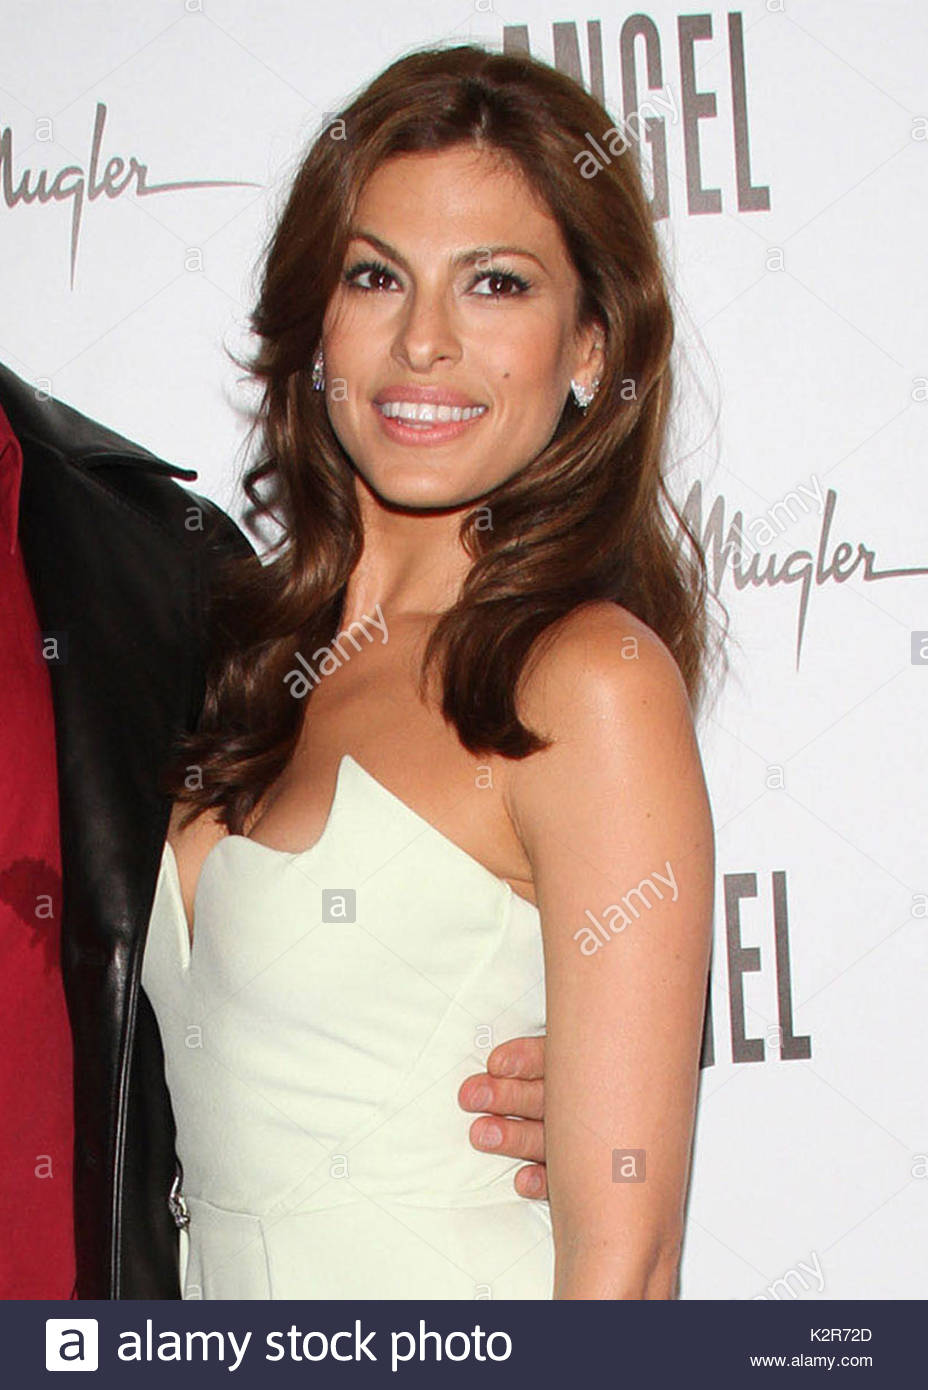 Eva thierry mendes muglers new angel photo